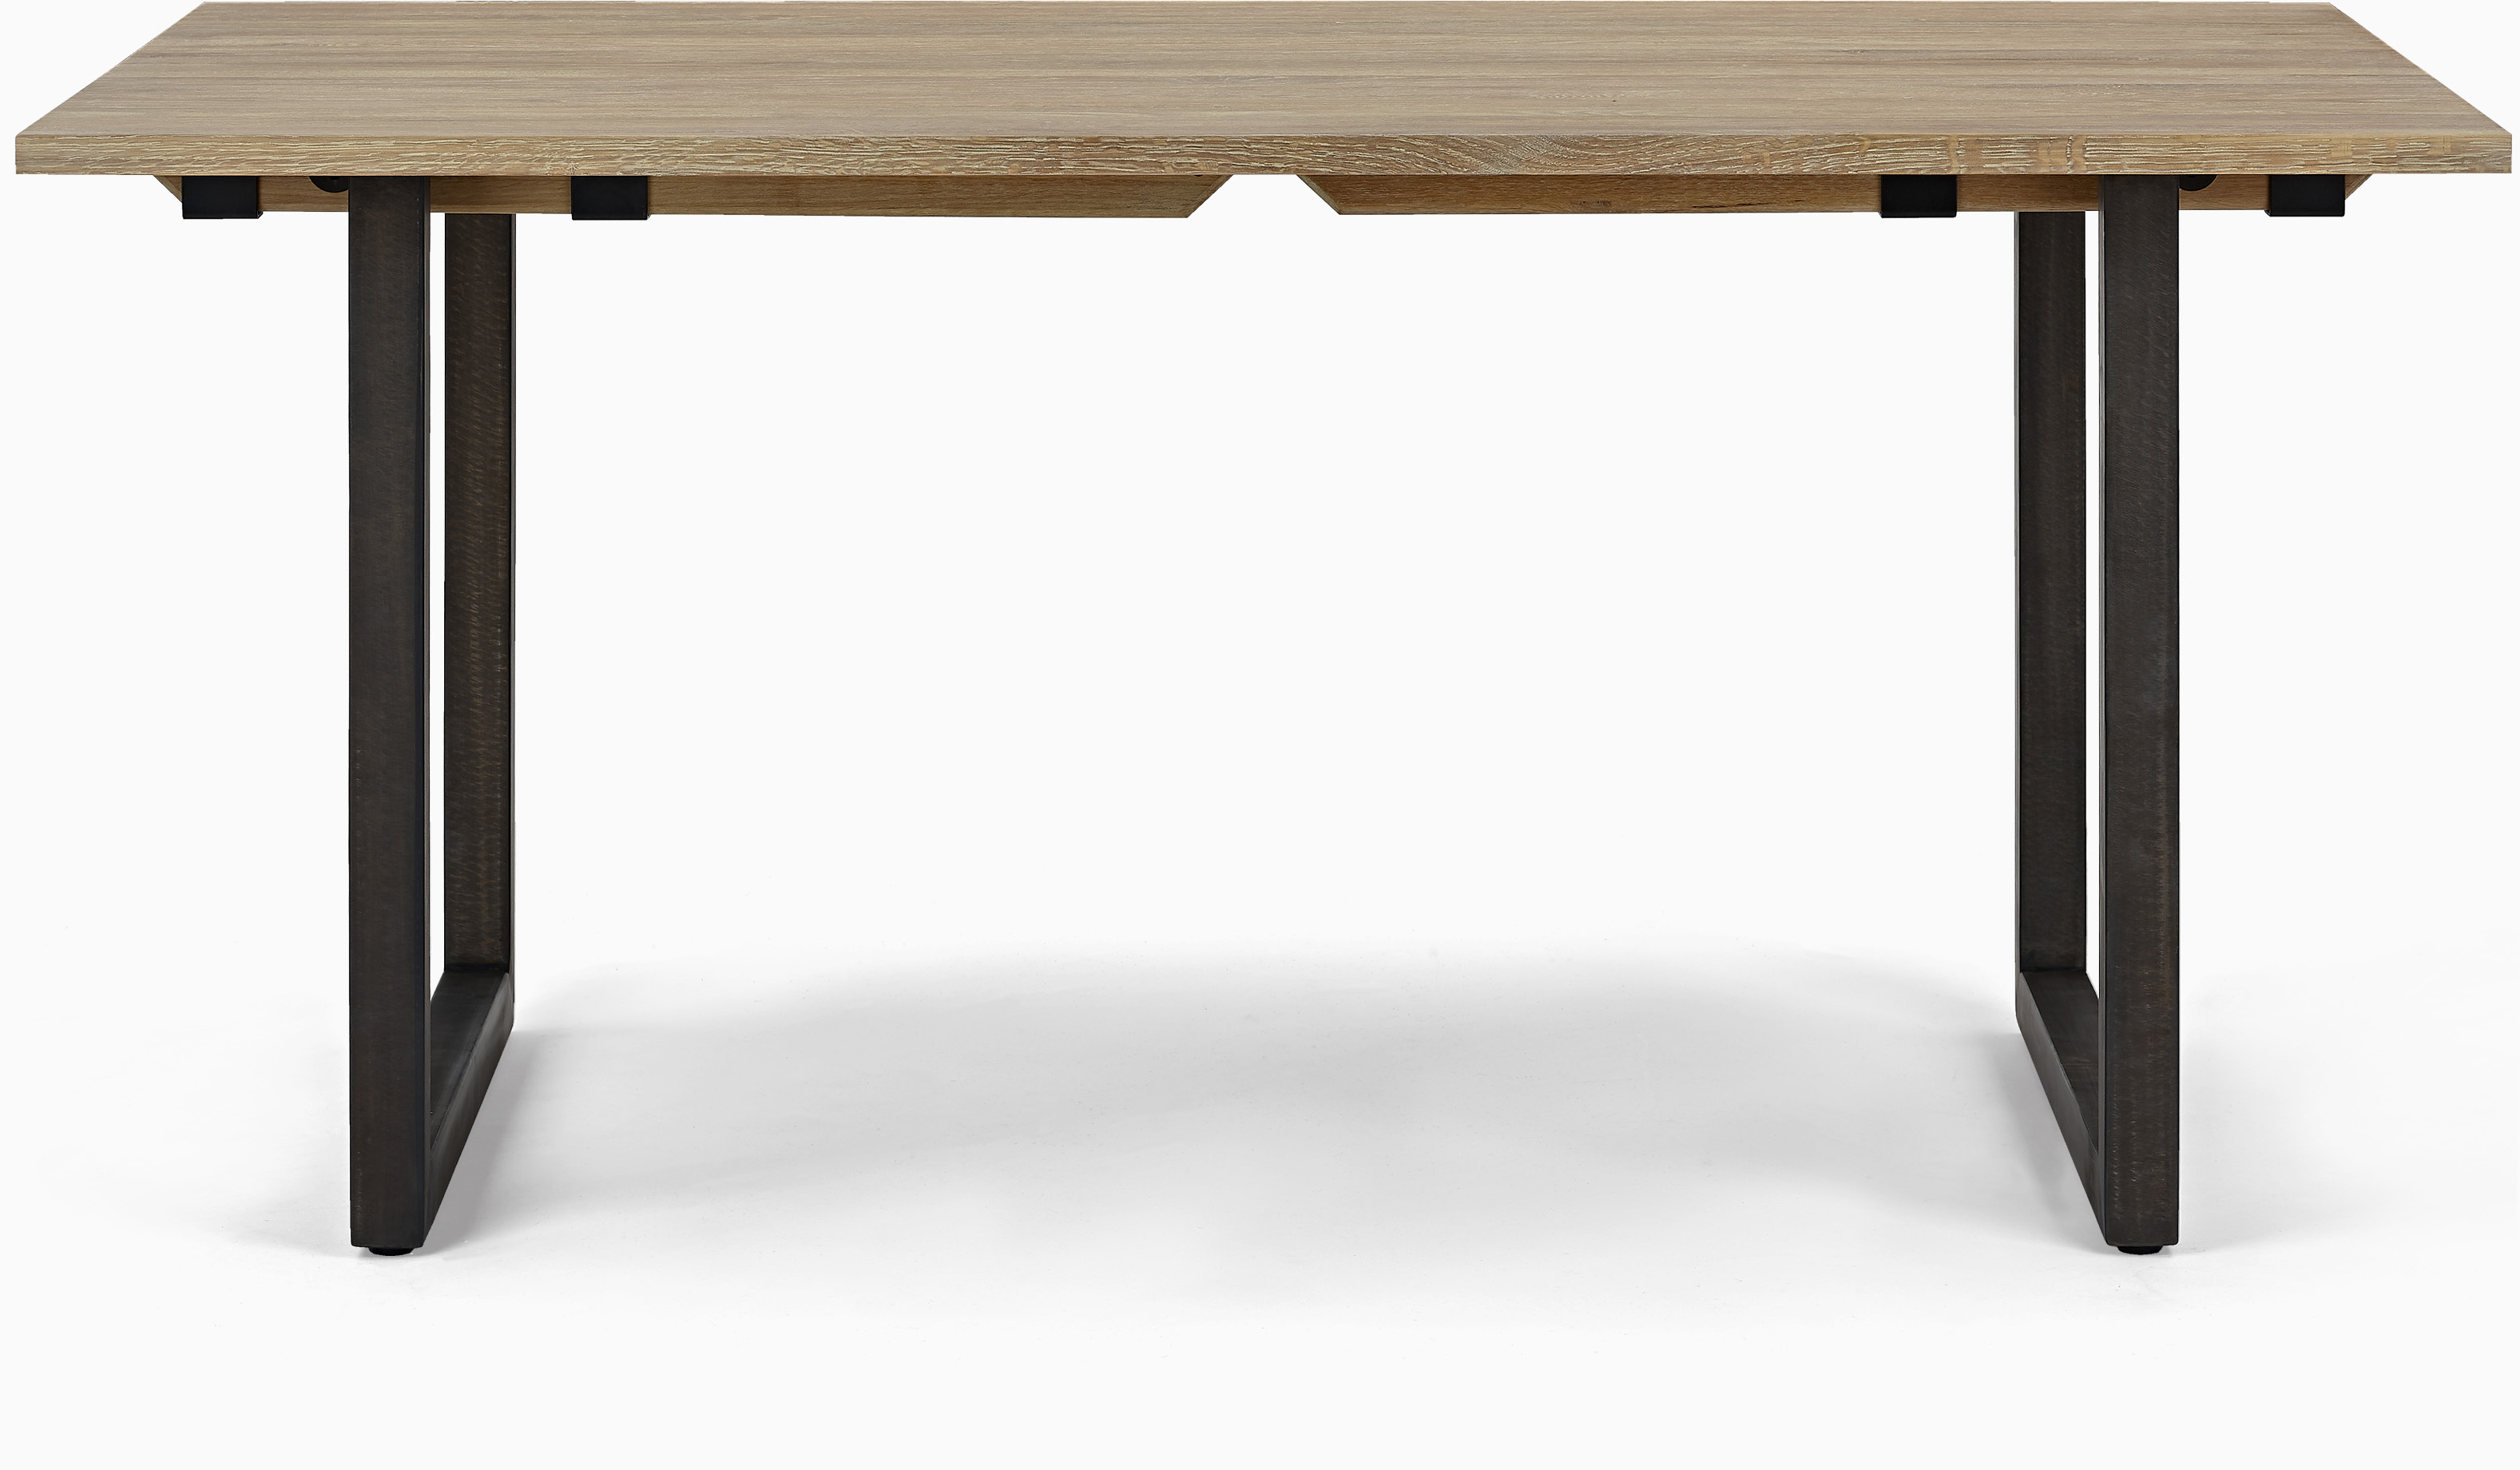 Carter 6-12 Seater Dining Table